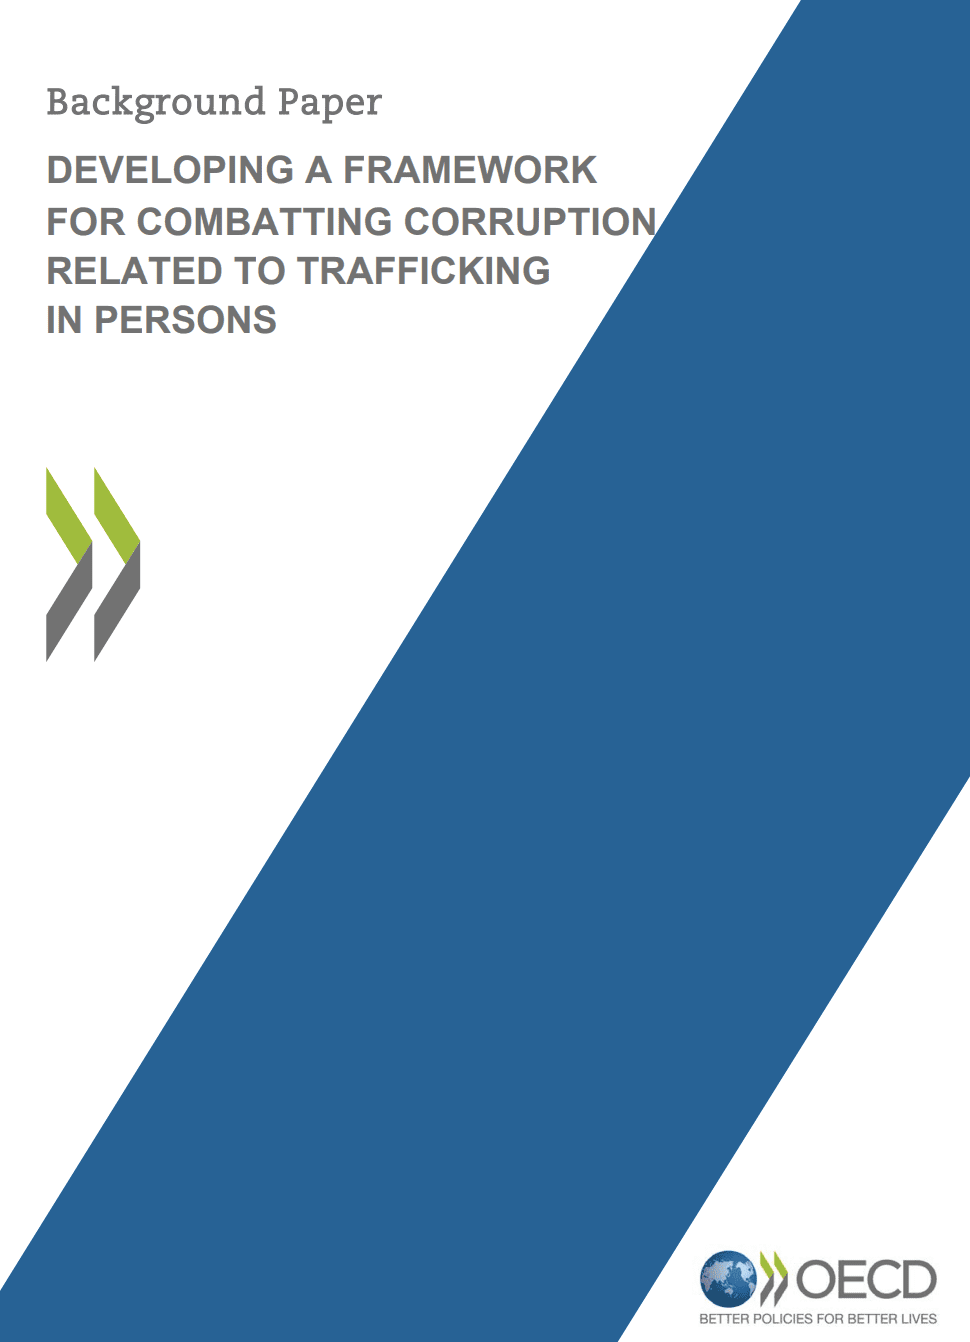 Developing a Framework for Combatting Corruption Related to Trafficking in Persons